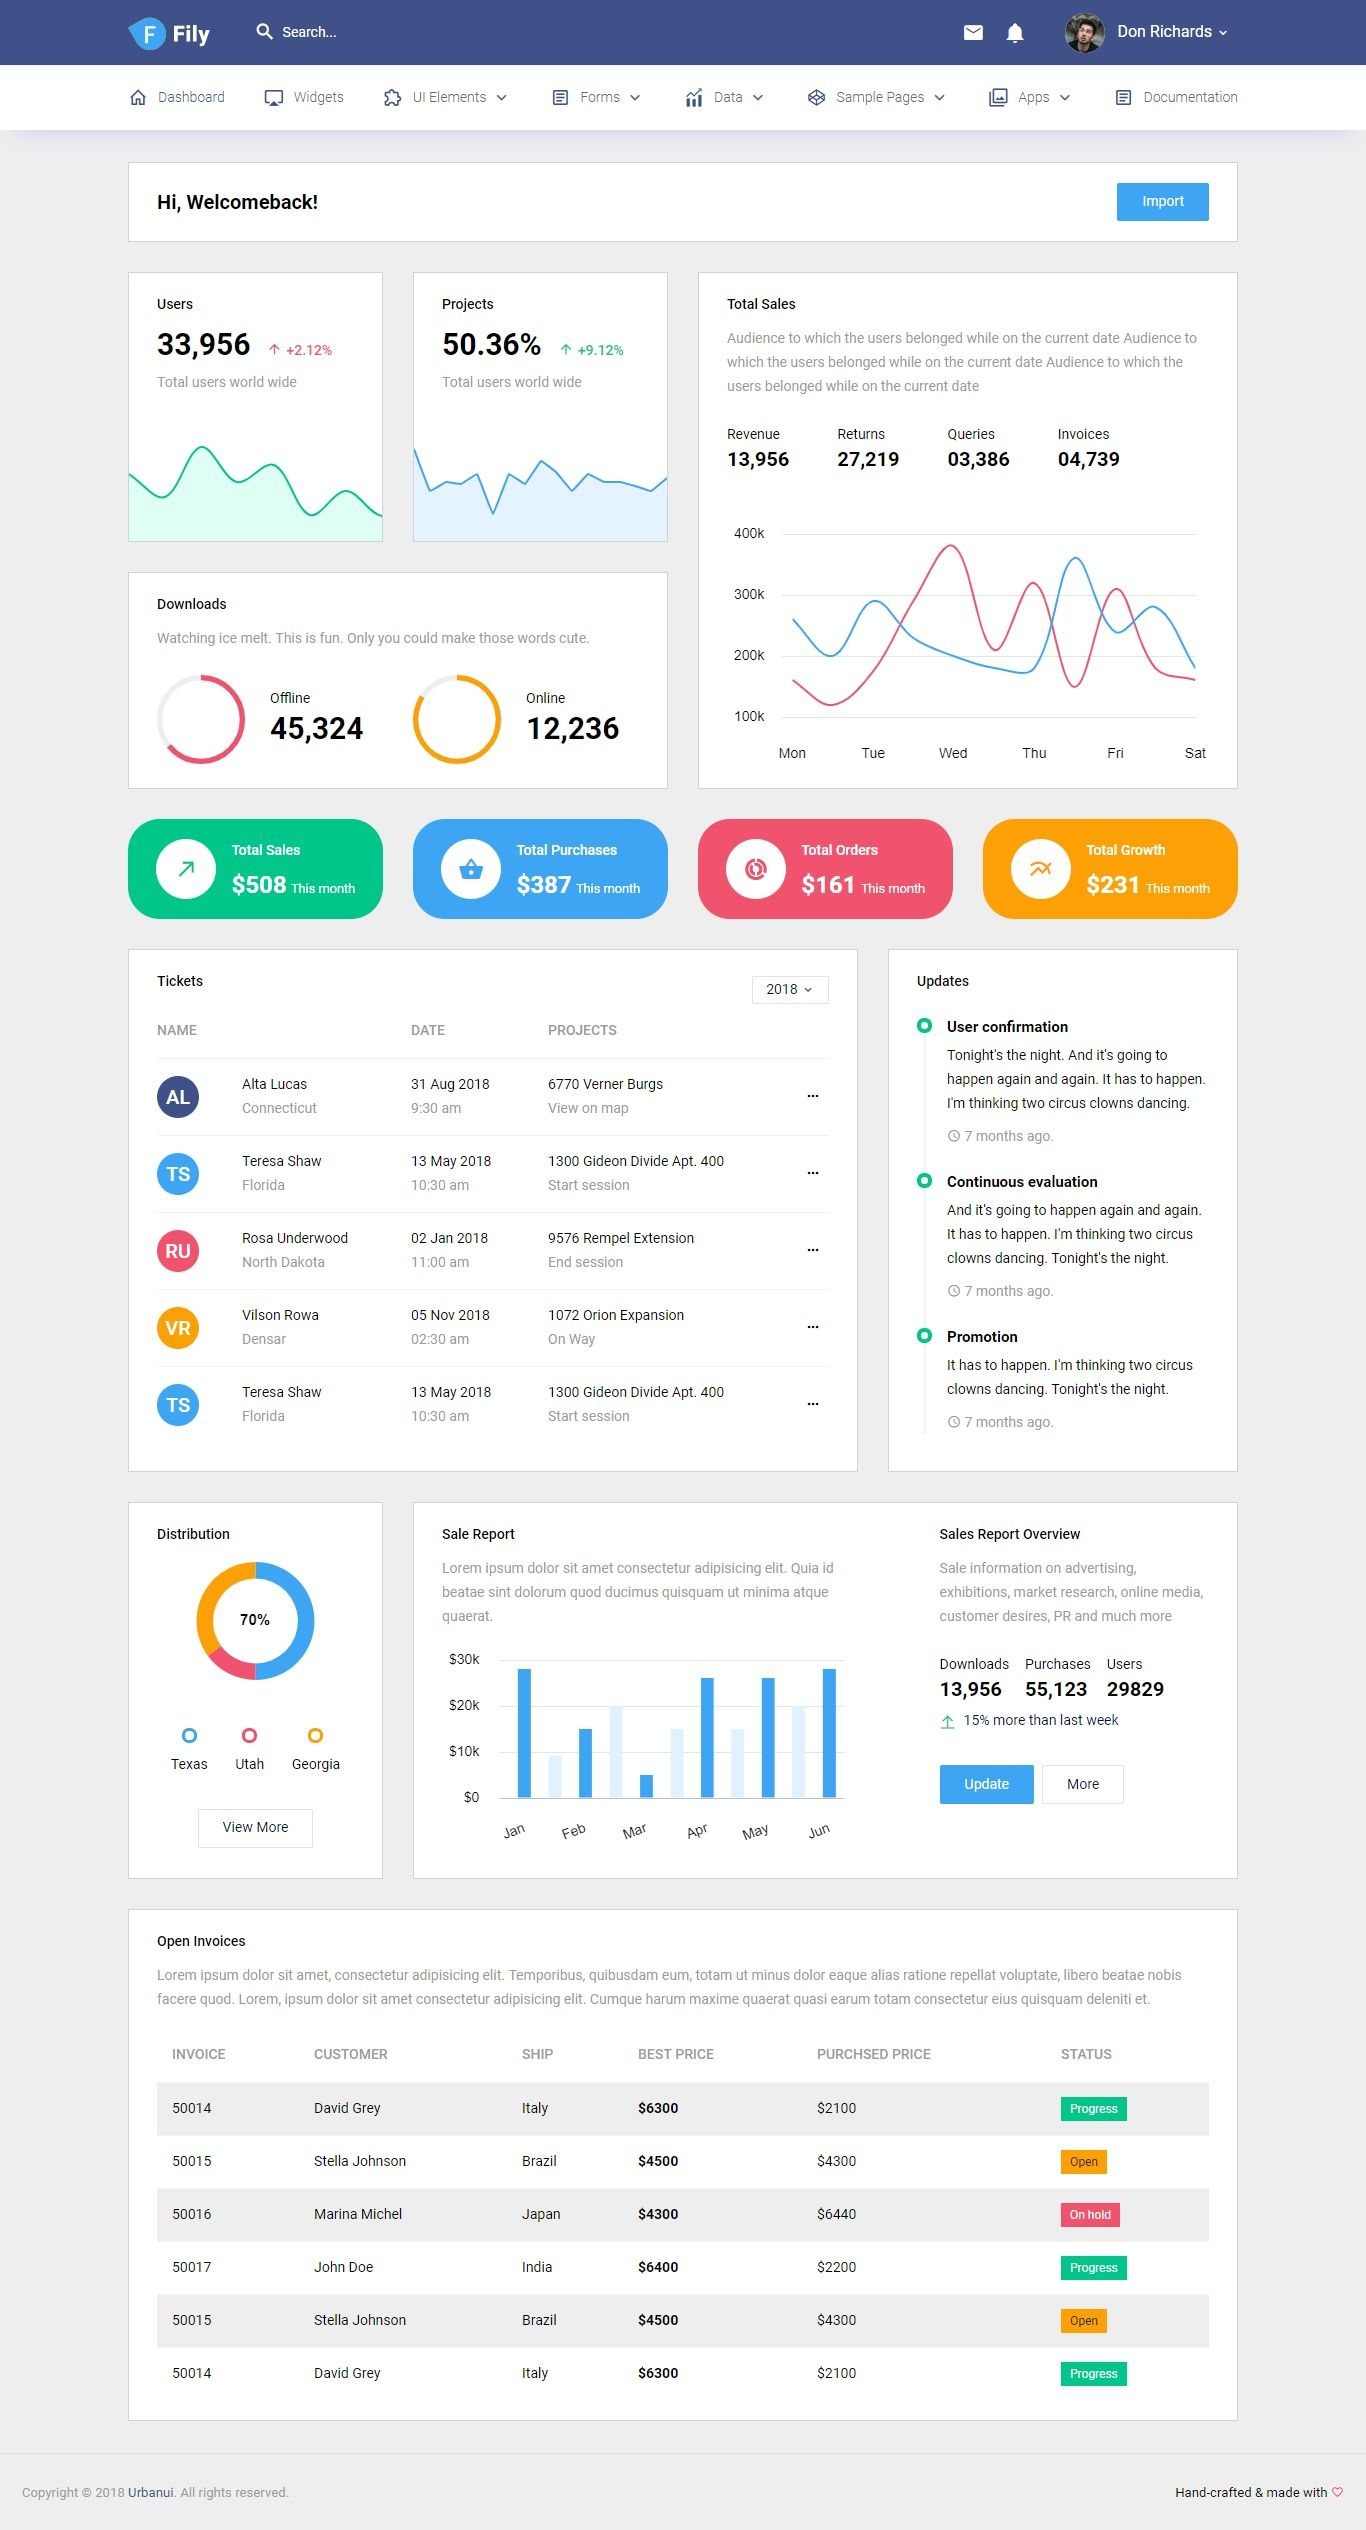 Fily Responsive Bootstrap Admin Template In 2020 Dashboard Design Dashboard Interface App Design Layout